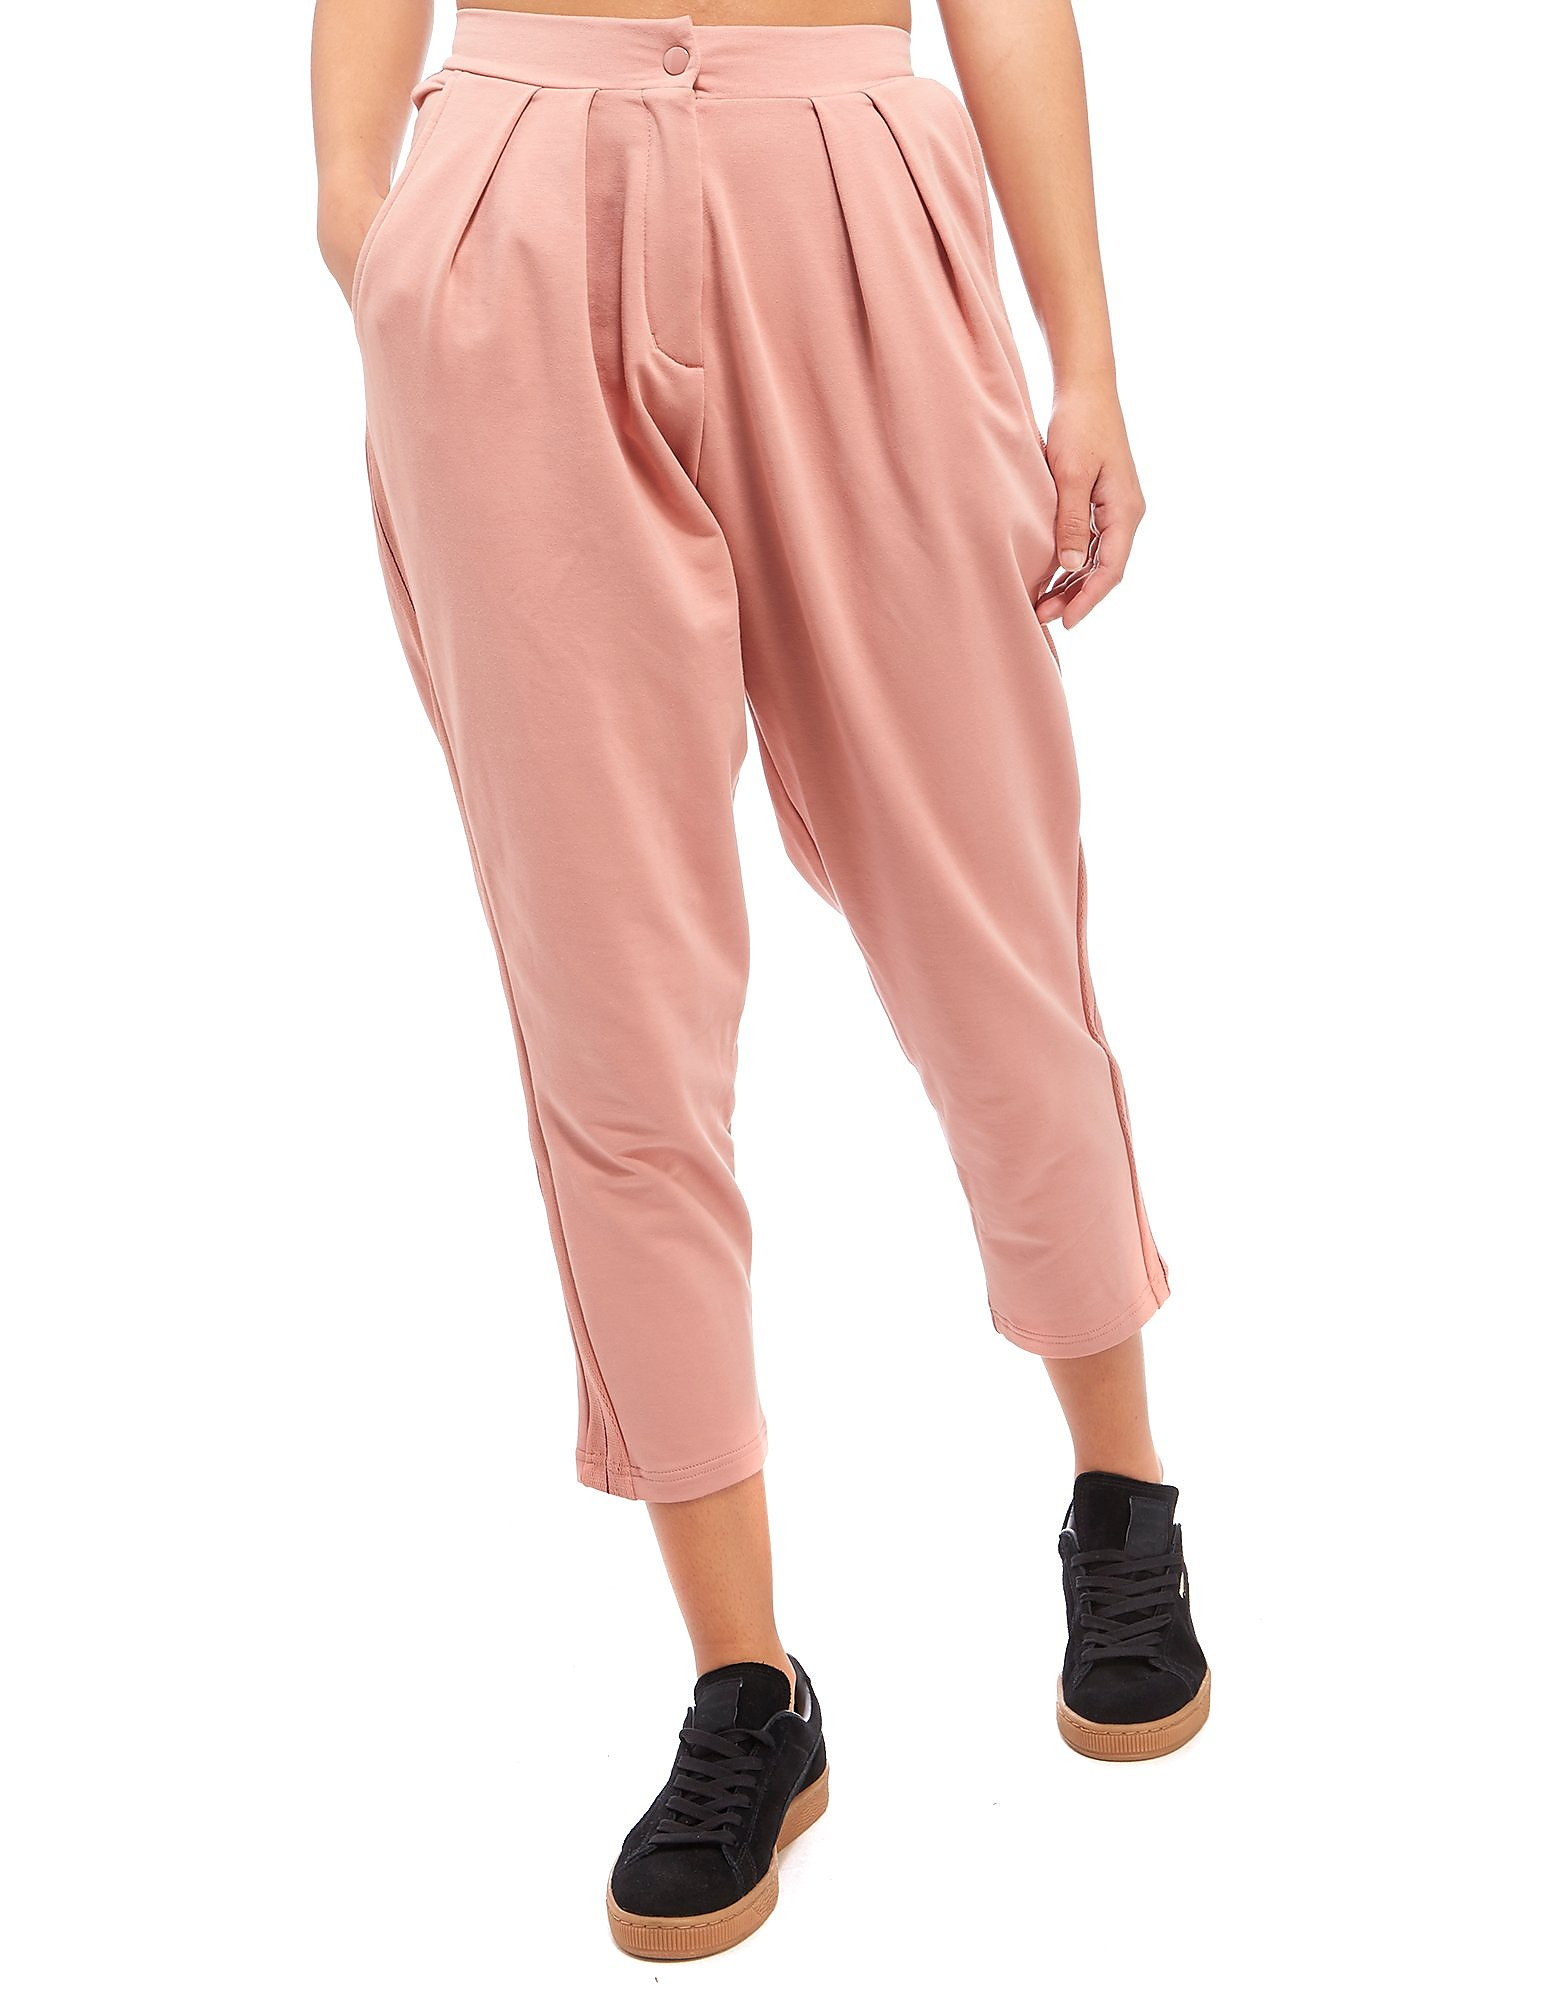 PUMA High Waisted Sweatpants